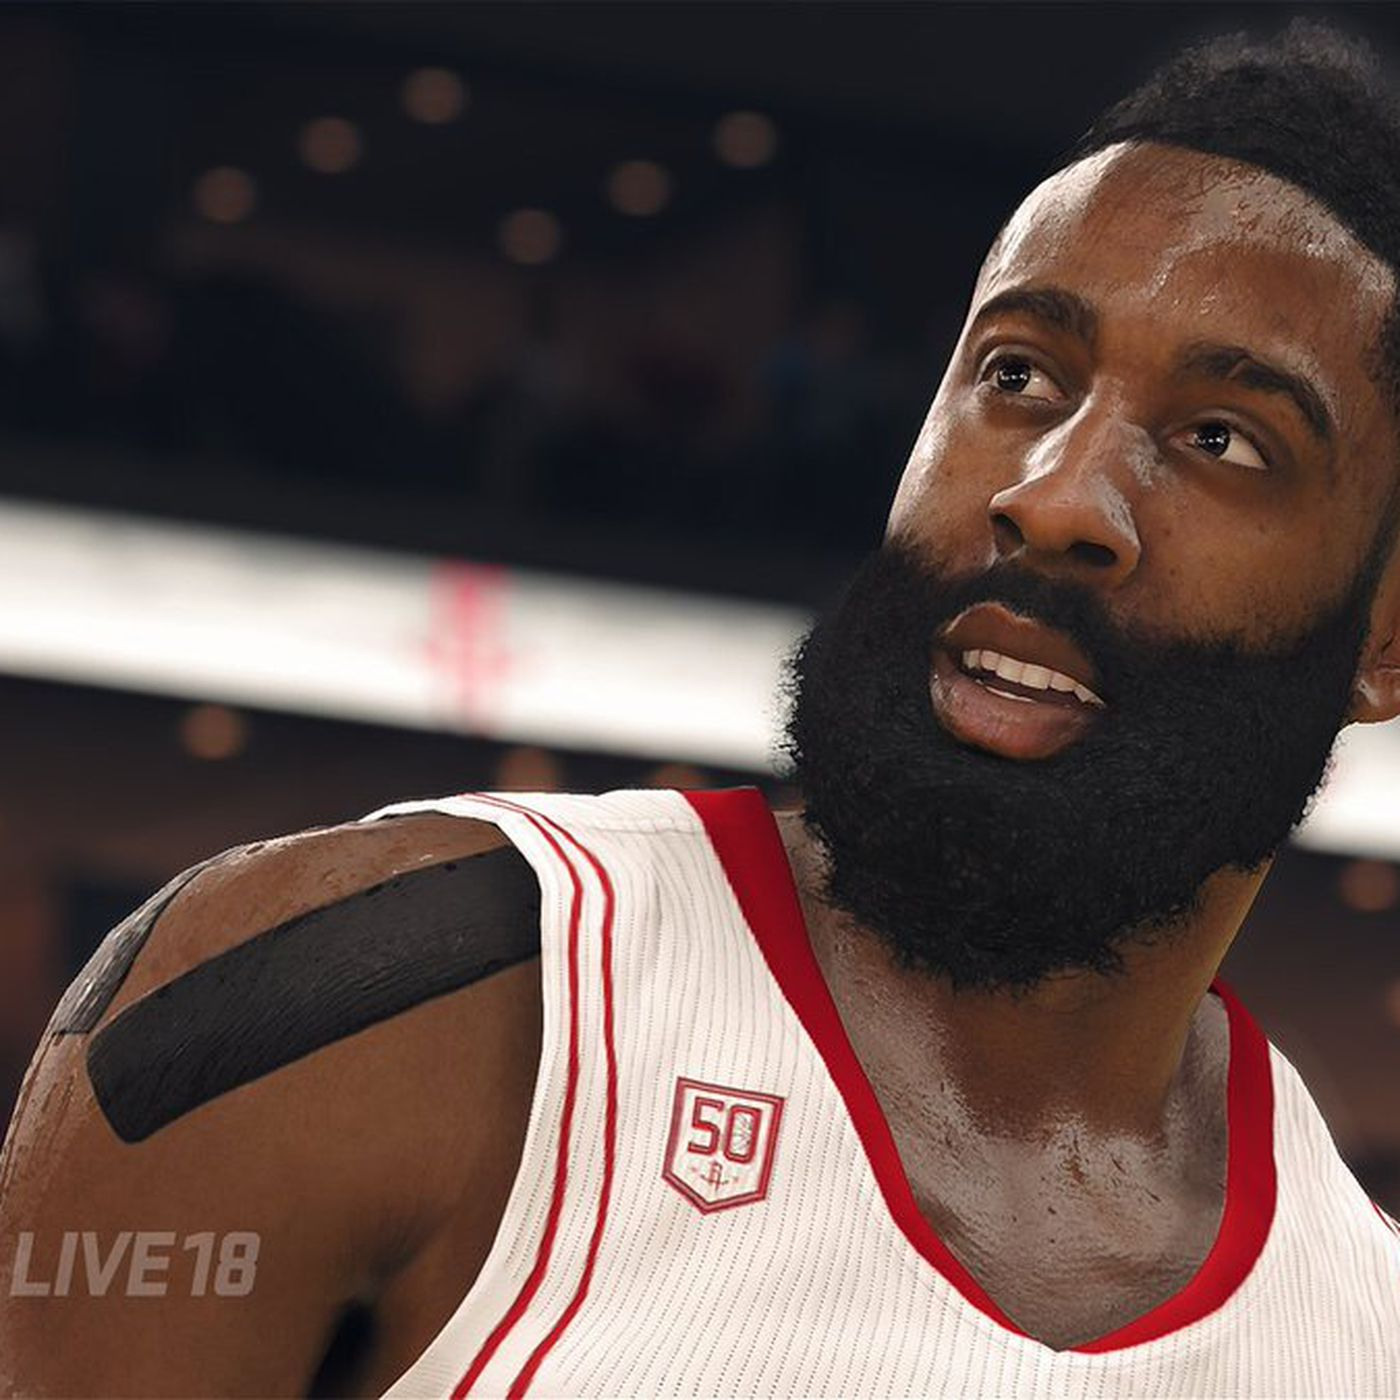 302a48f92340 NBA Live 18 reveals launch date and cover star James Harden - Polygon